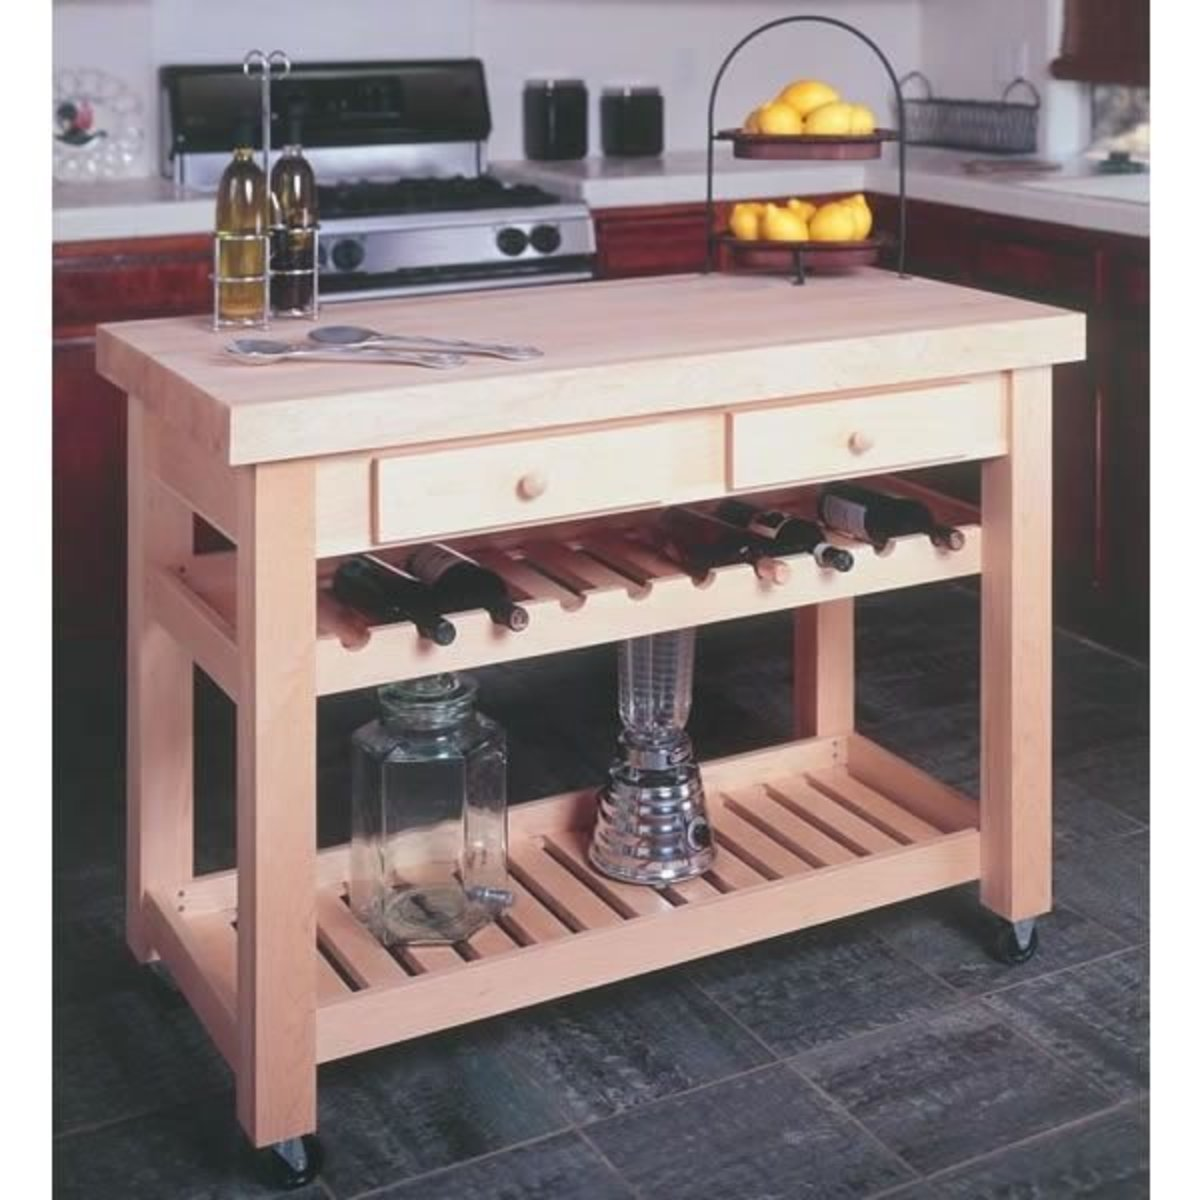 Woodworking Project Paper Plan For Kitchen Island